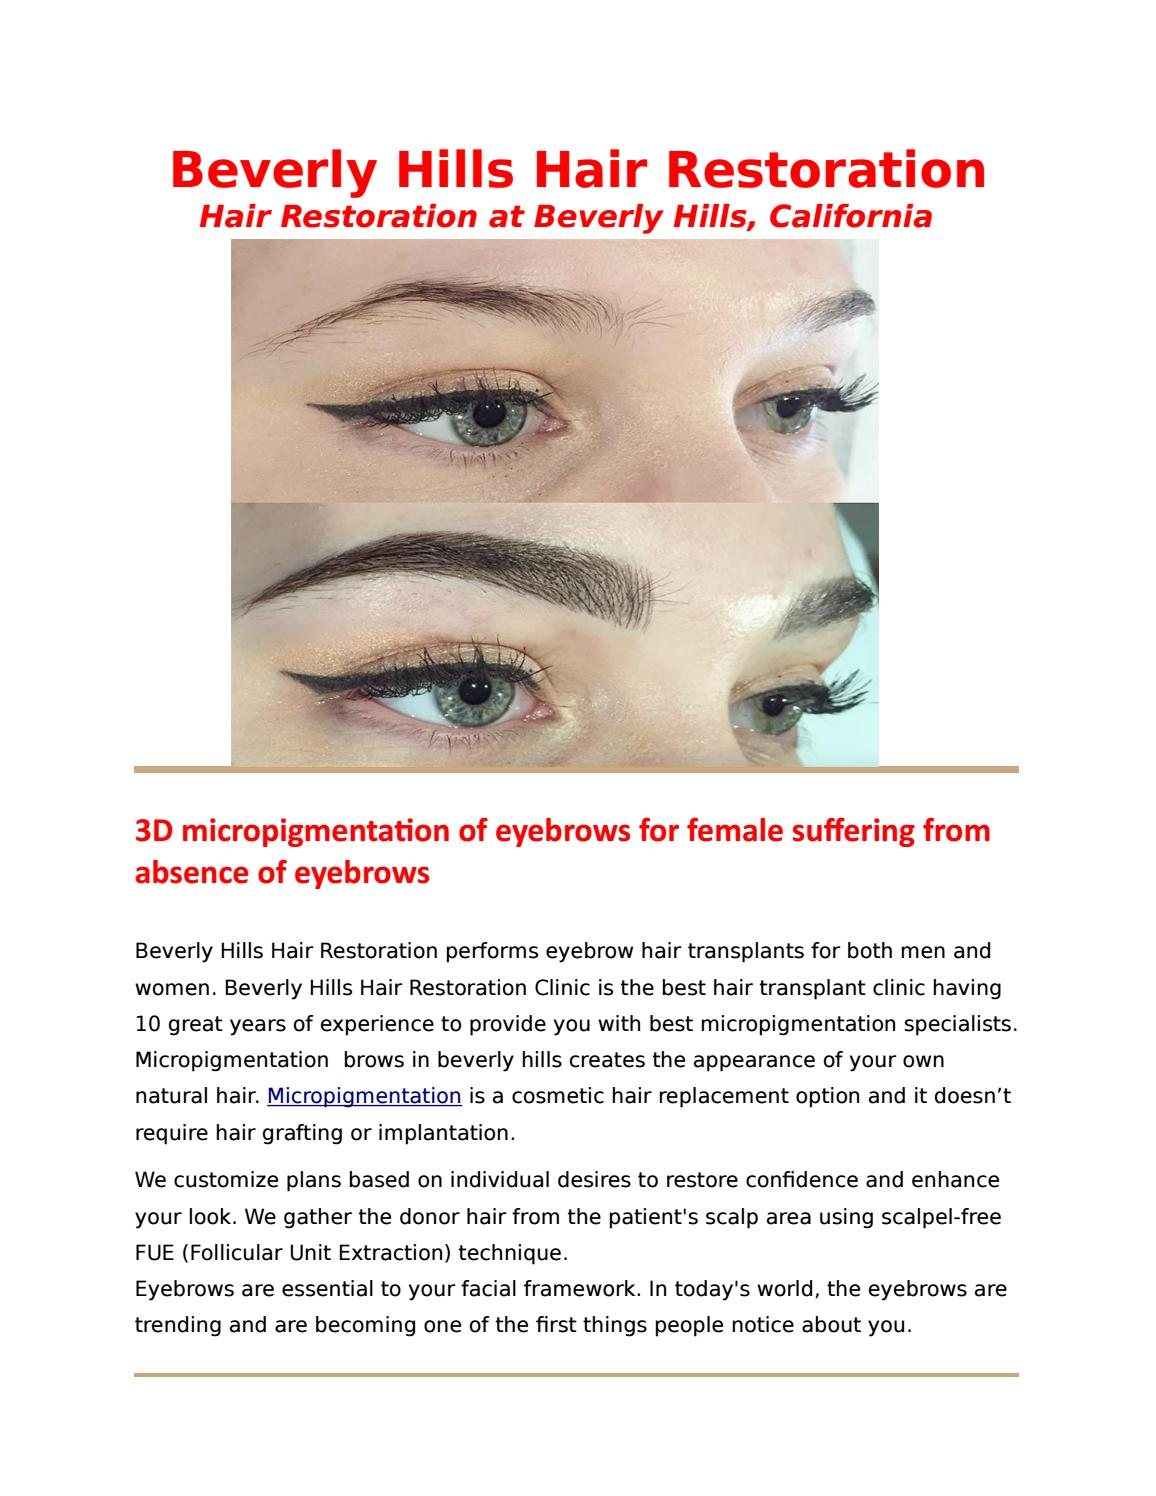 3d Micropigmentation Of Eyebrows In Beverly Hills For Female